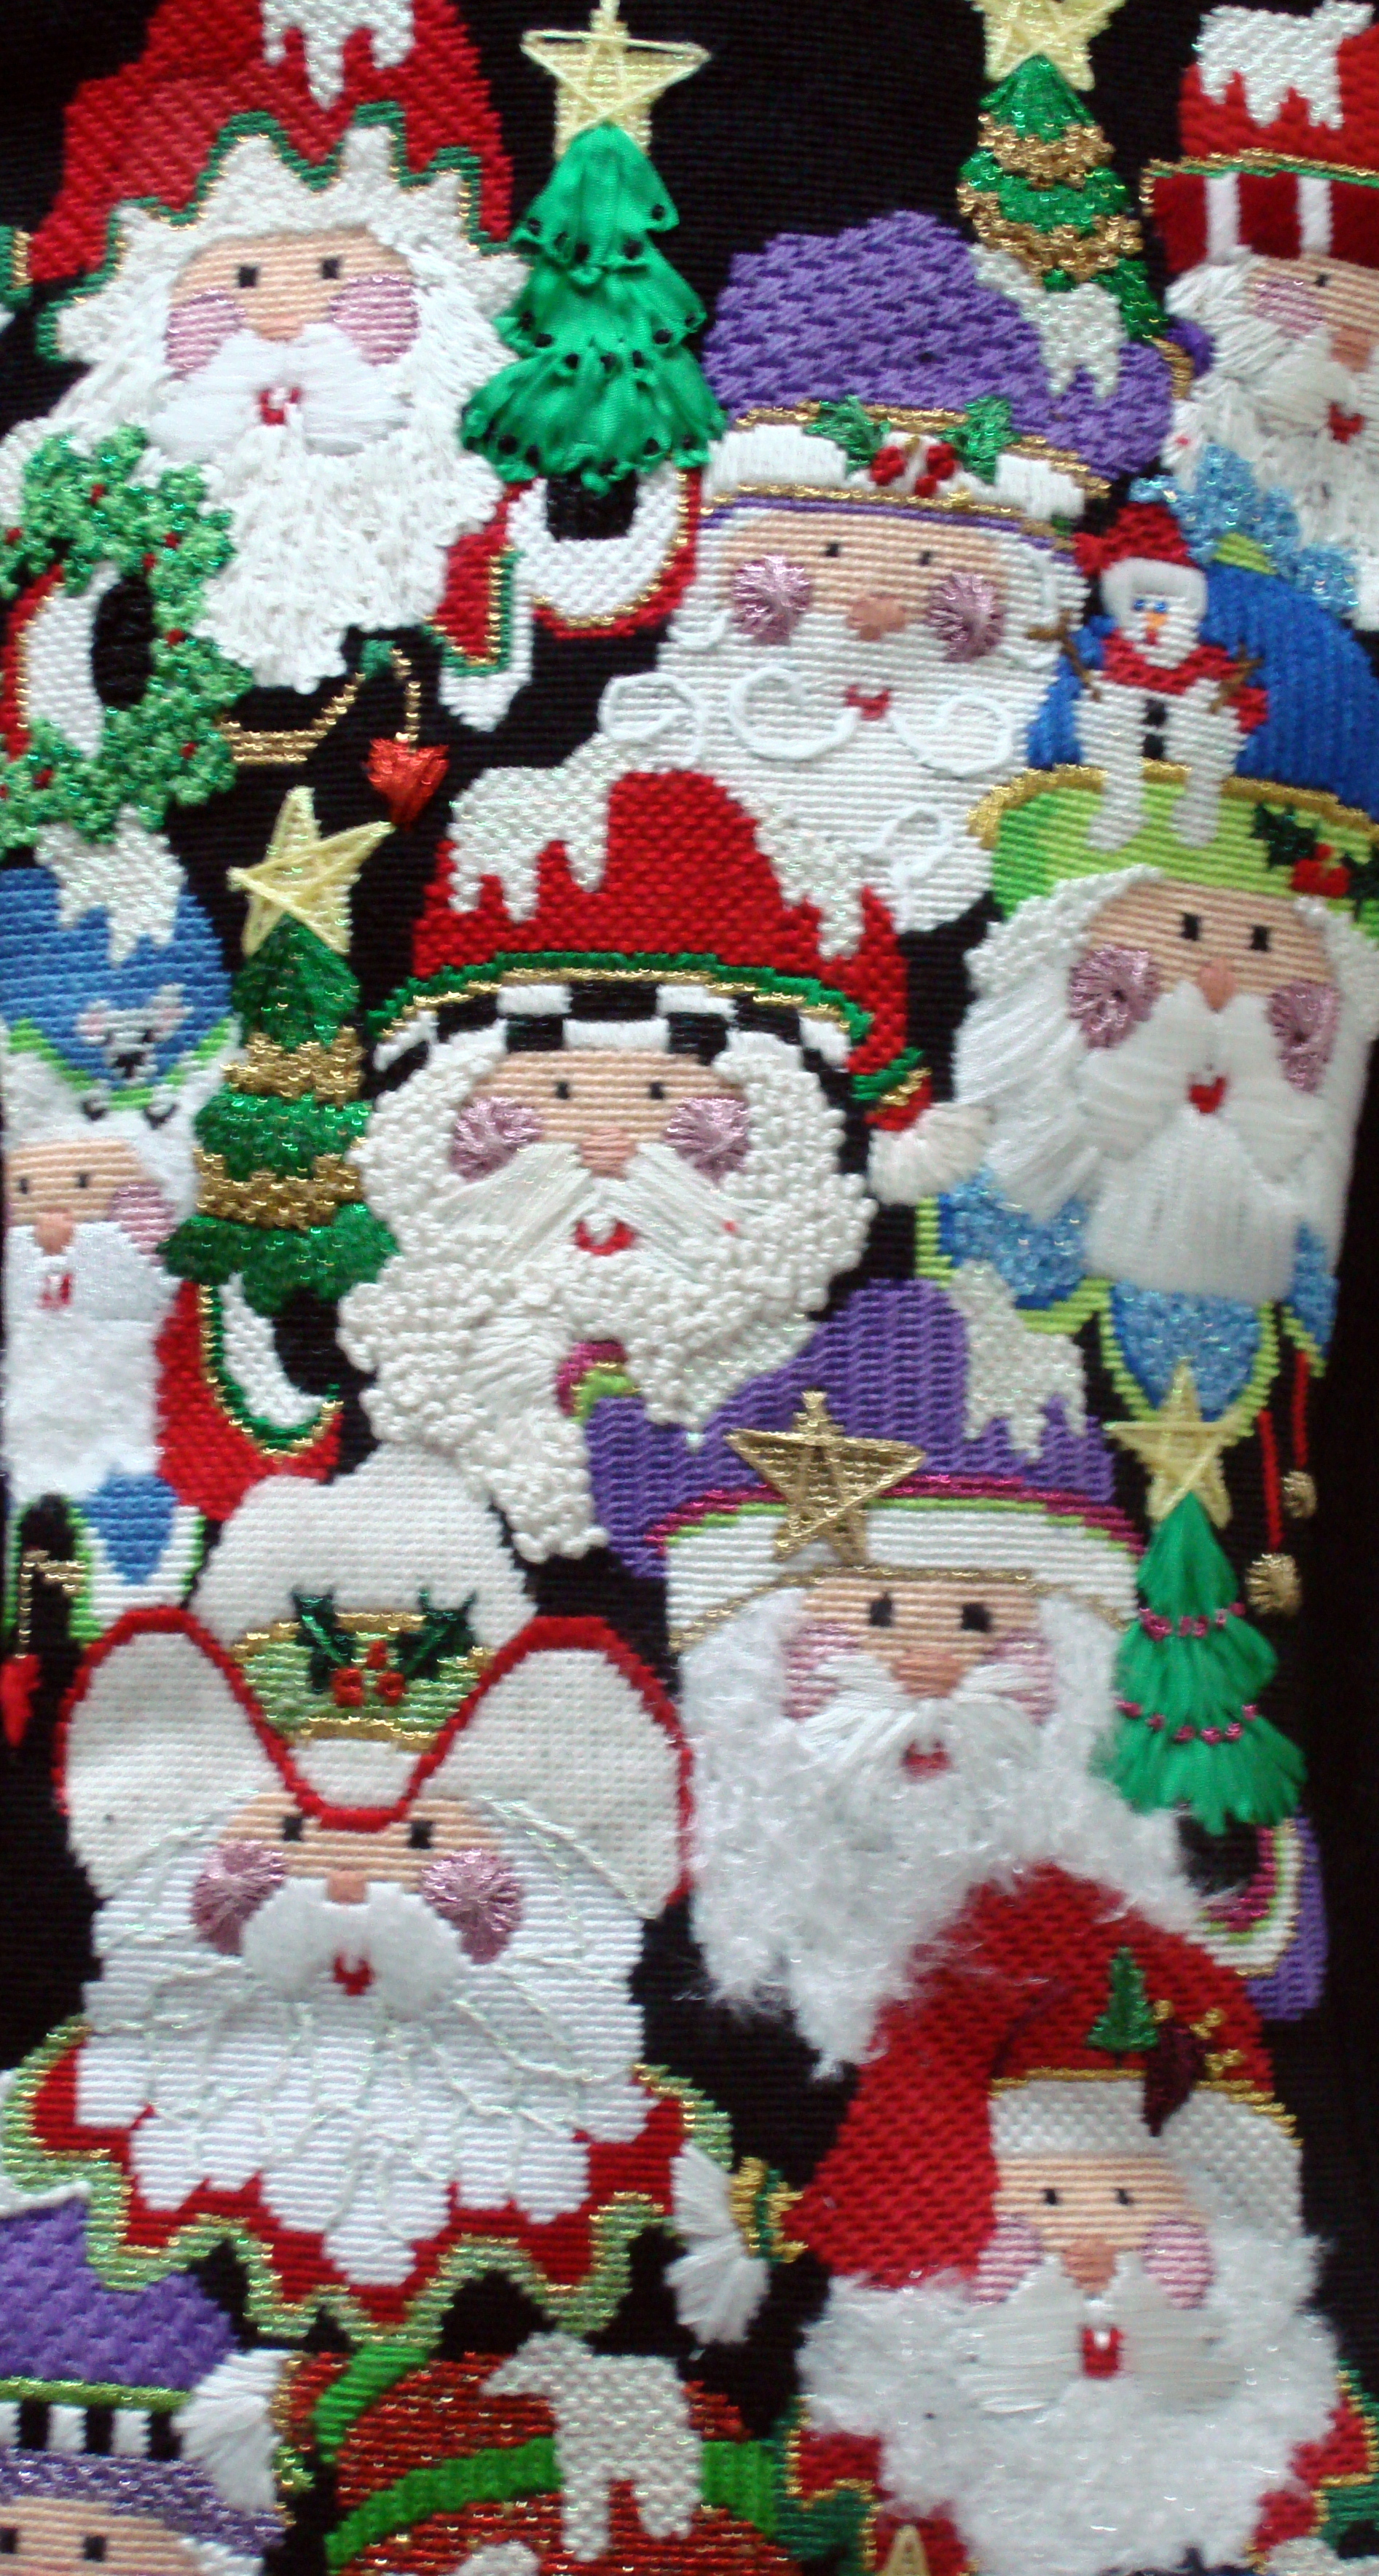 Multi Santas Faces 18 Mesh (Model Shown) (handpainted from Strictly Christmas Designs)